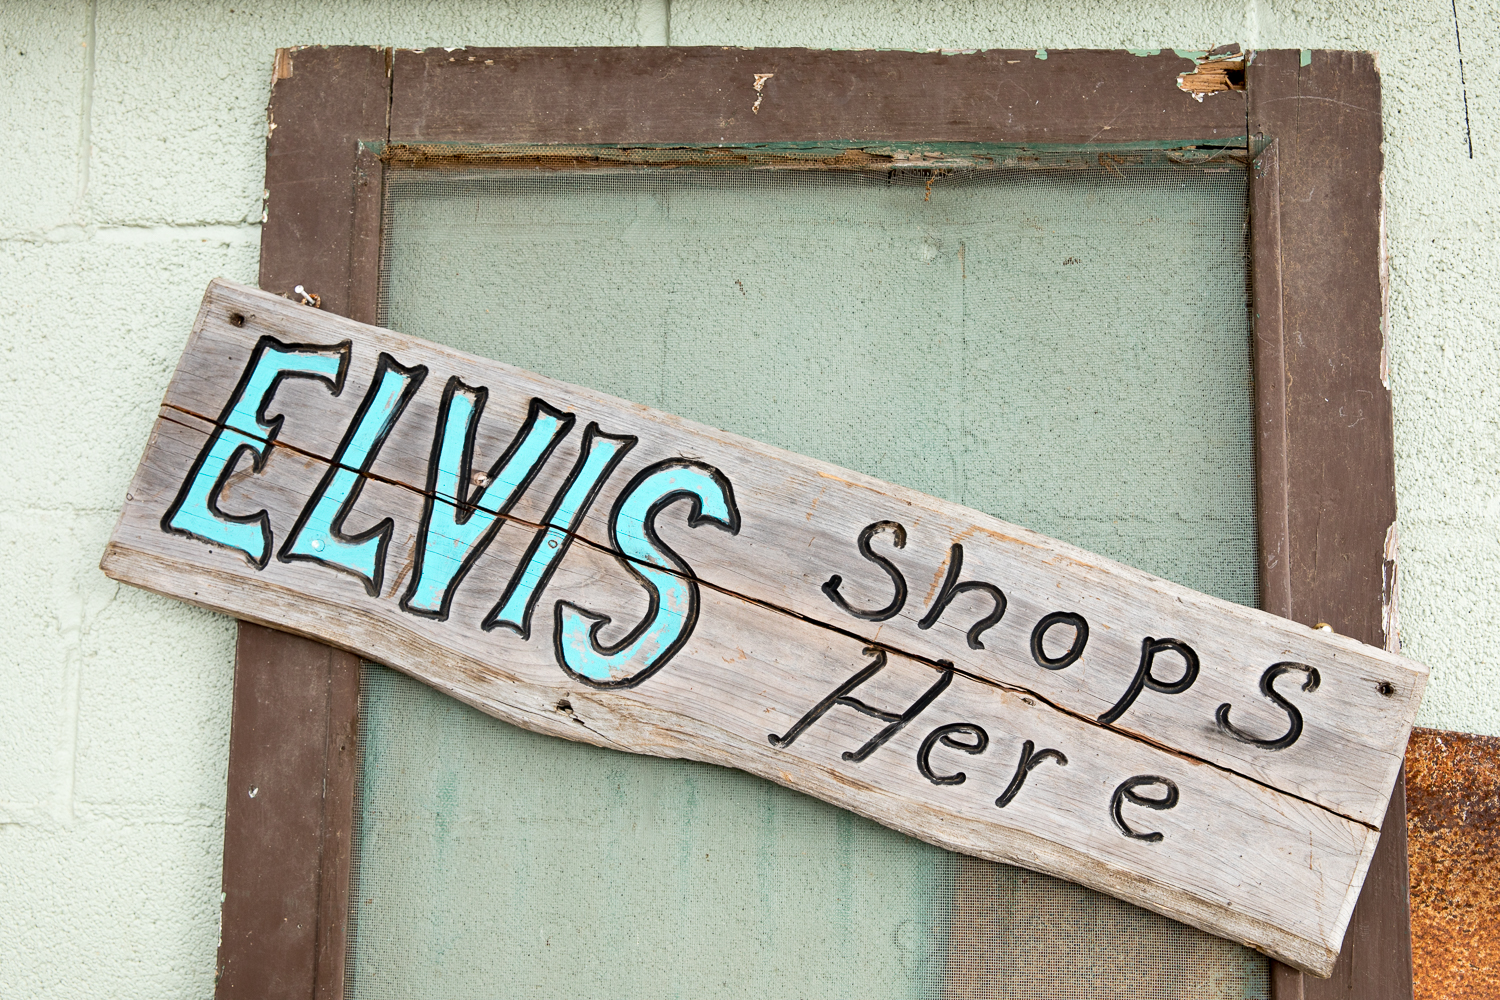 Texas Hill country Antique Shop